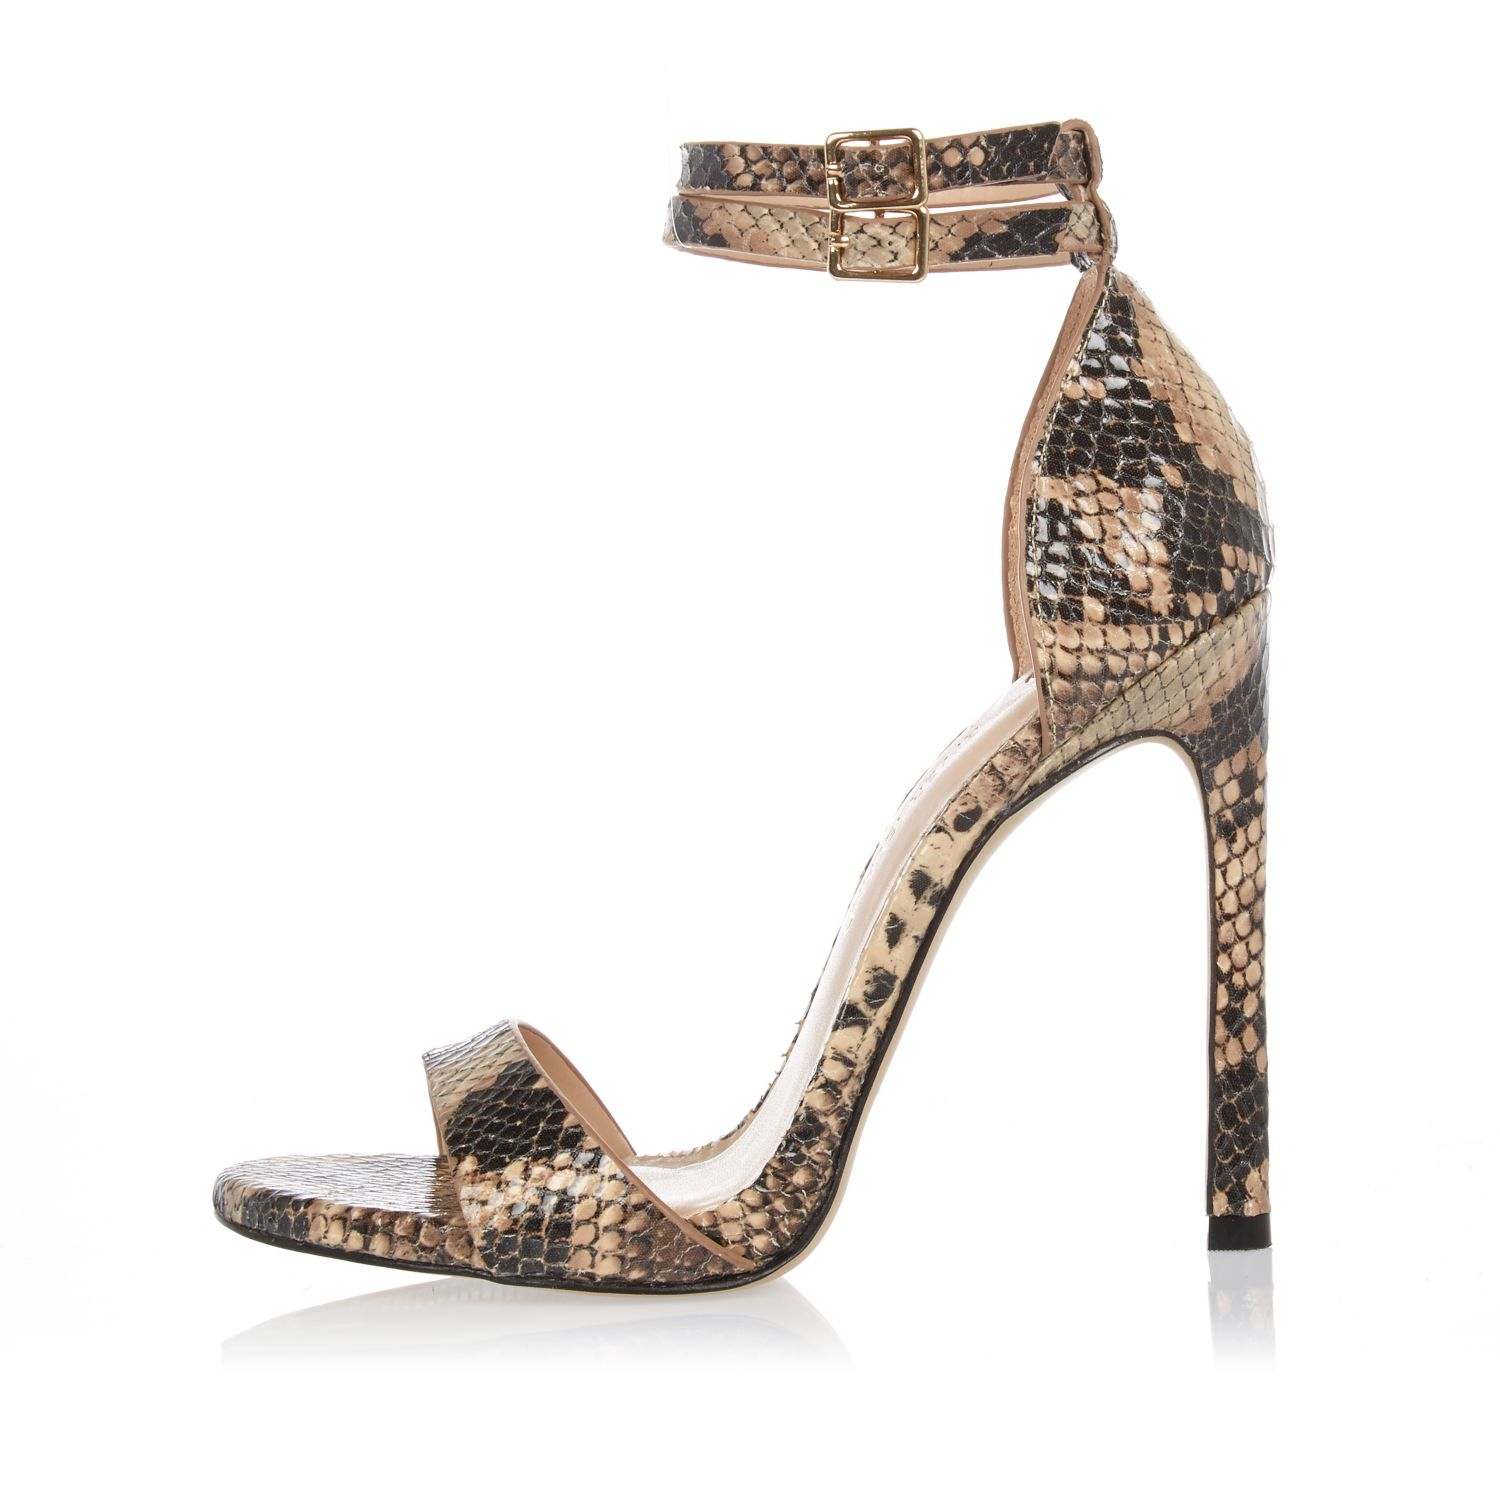 9c2216d8b3ac3c Lyst river island brown snake print barely there heeled sandals jpg  1500x1500 Snake print shoes for